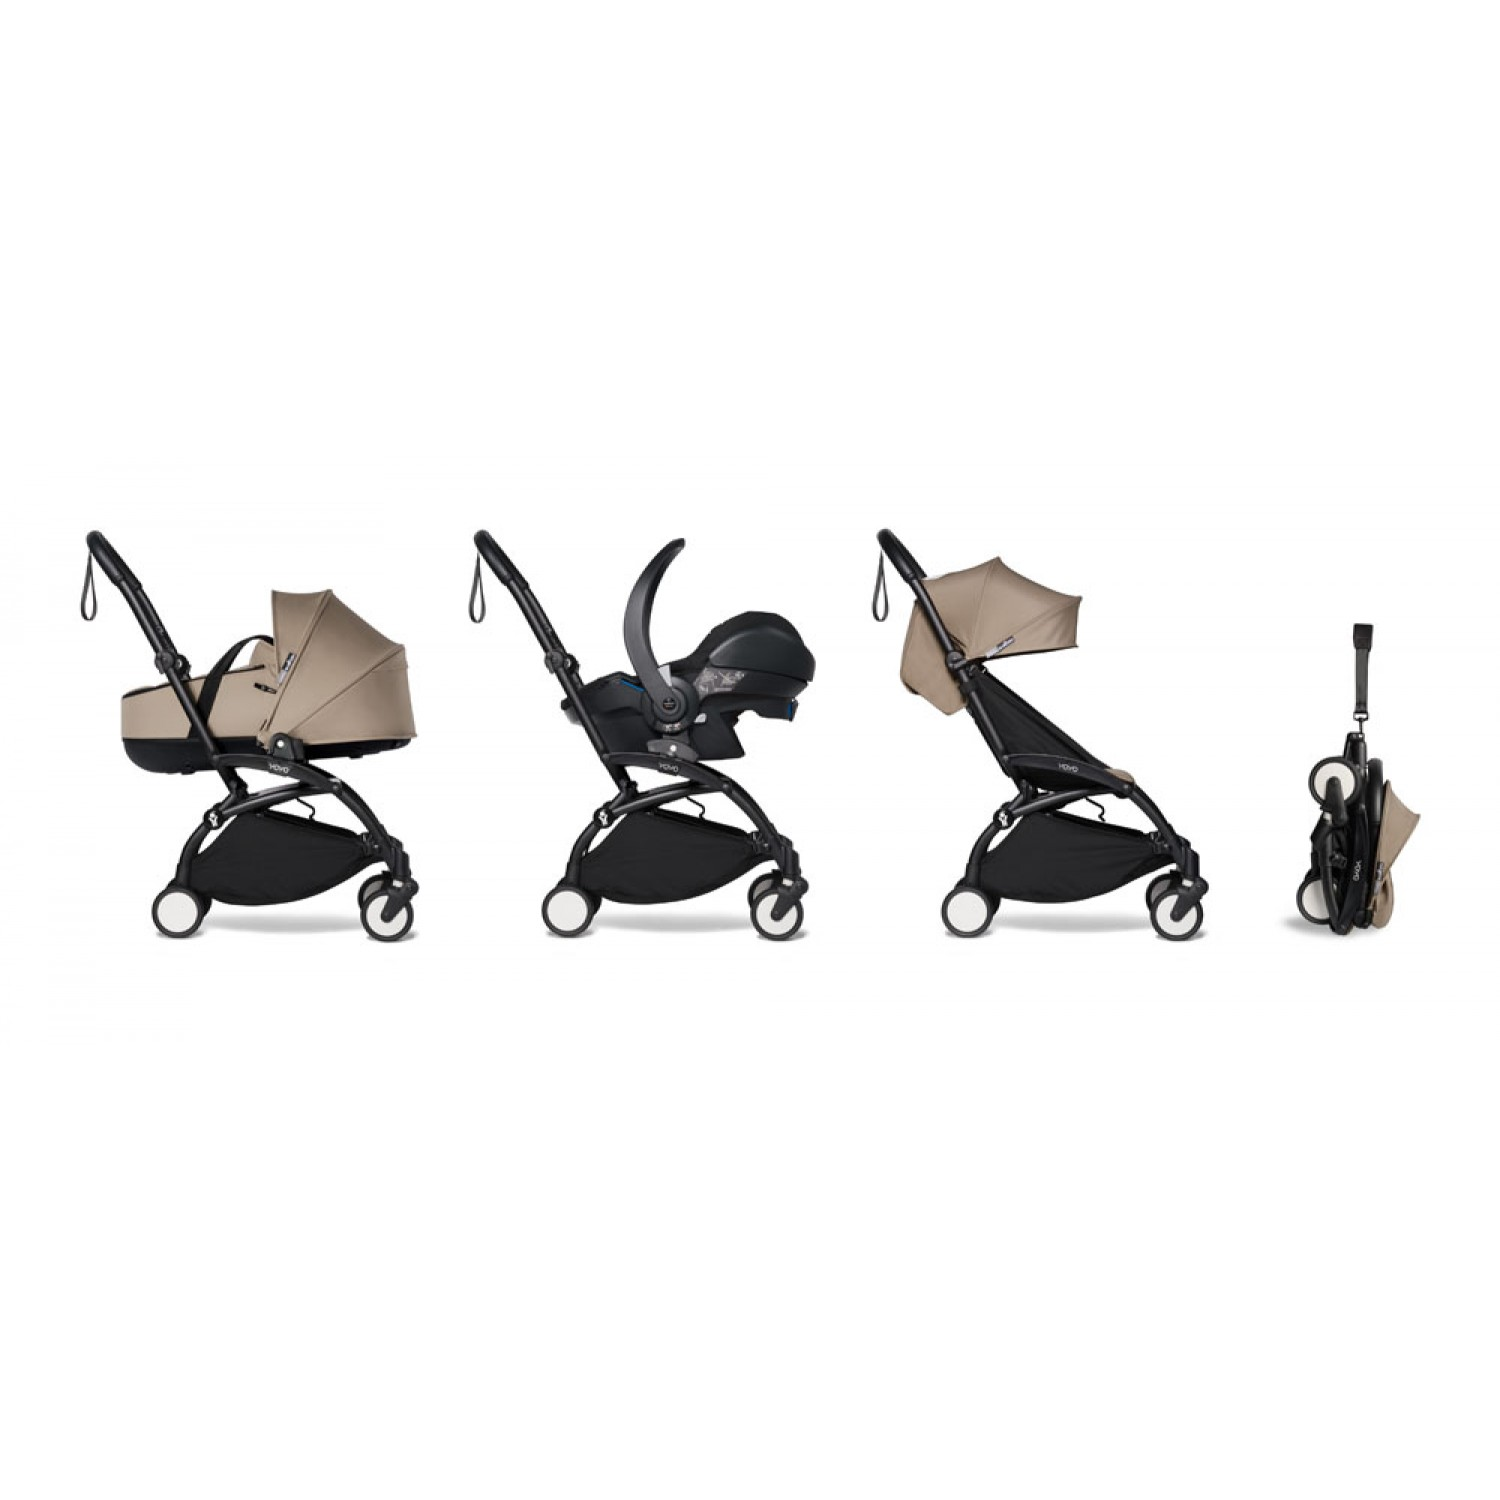 All-in-one BABYZEN stroller YOYO2 bassinet, car seat and 6+  Black Frame   Taupe